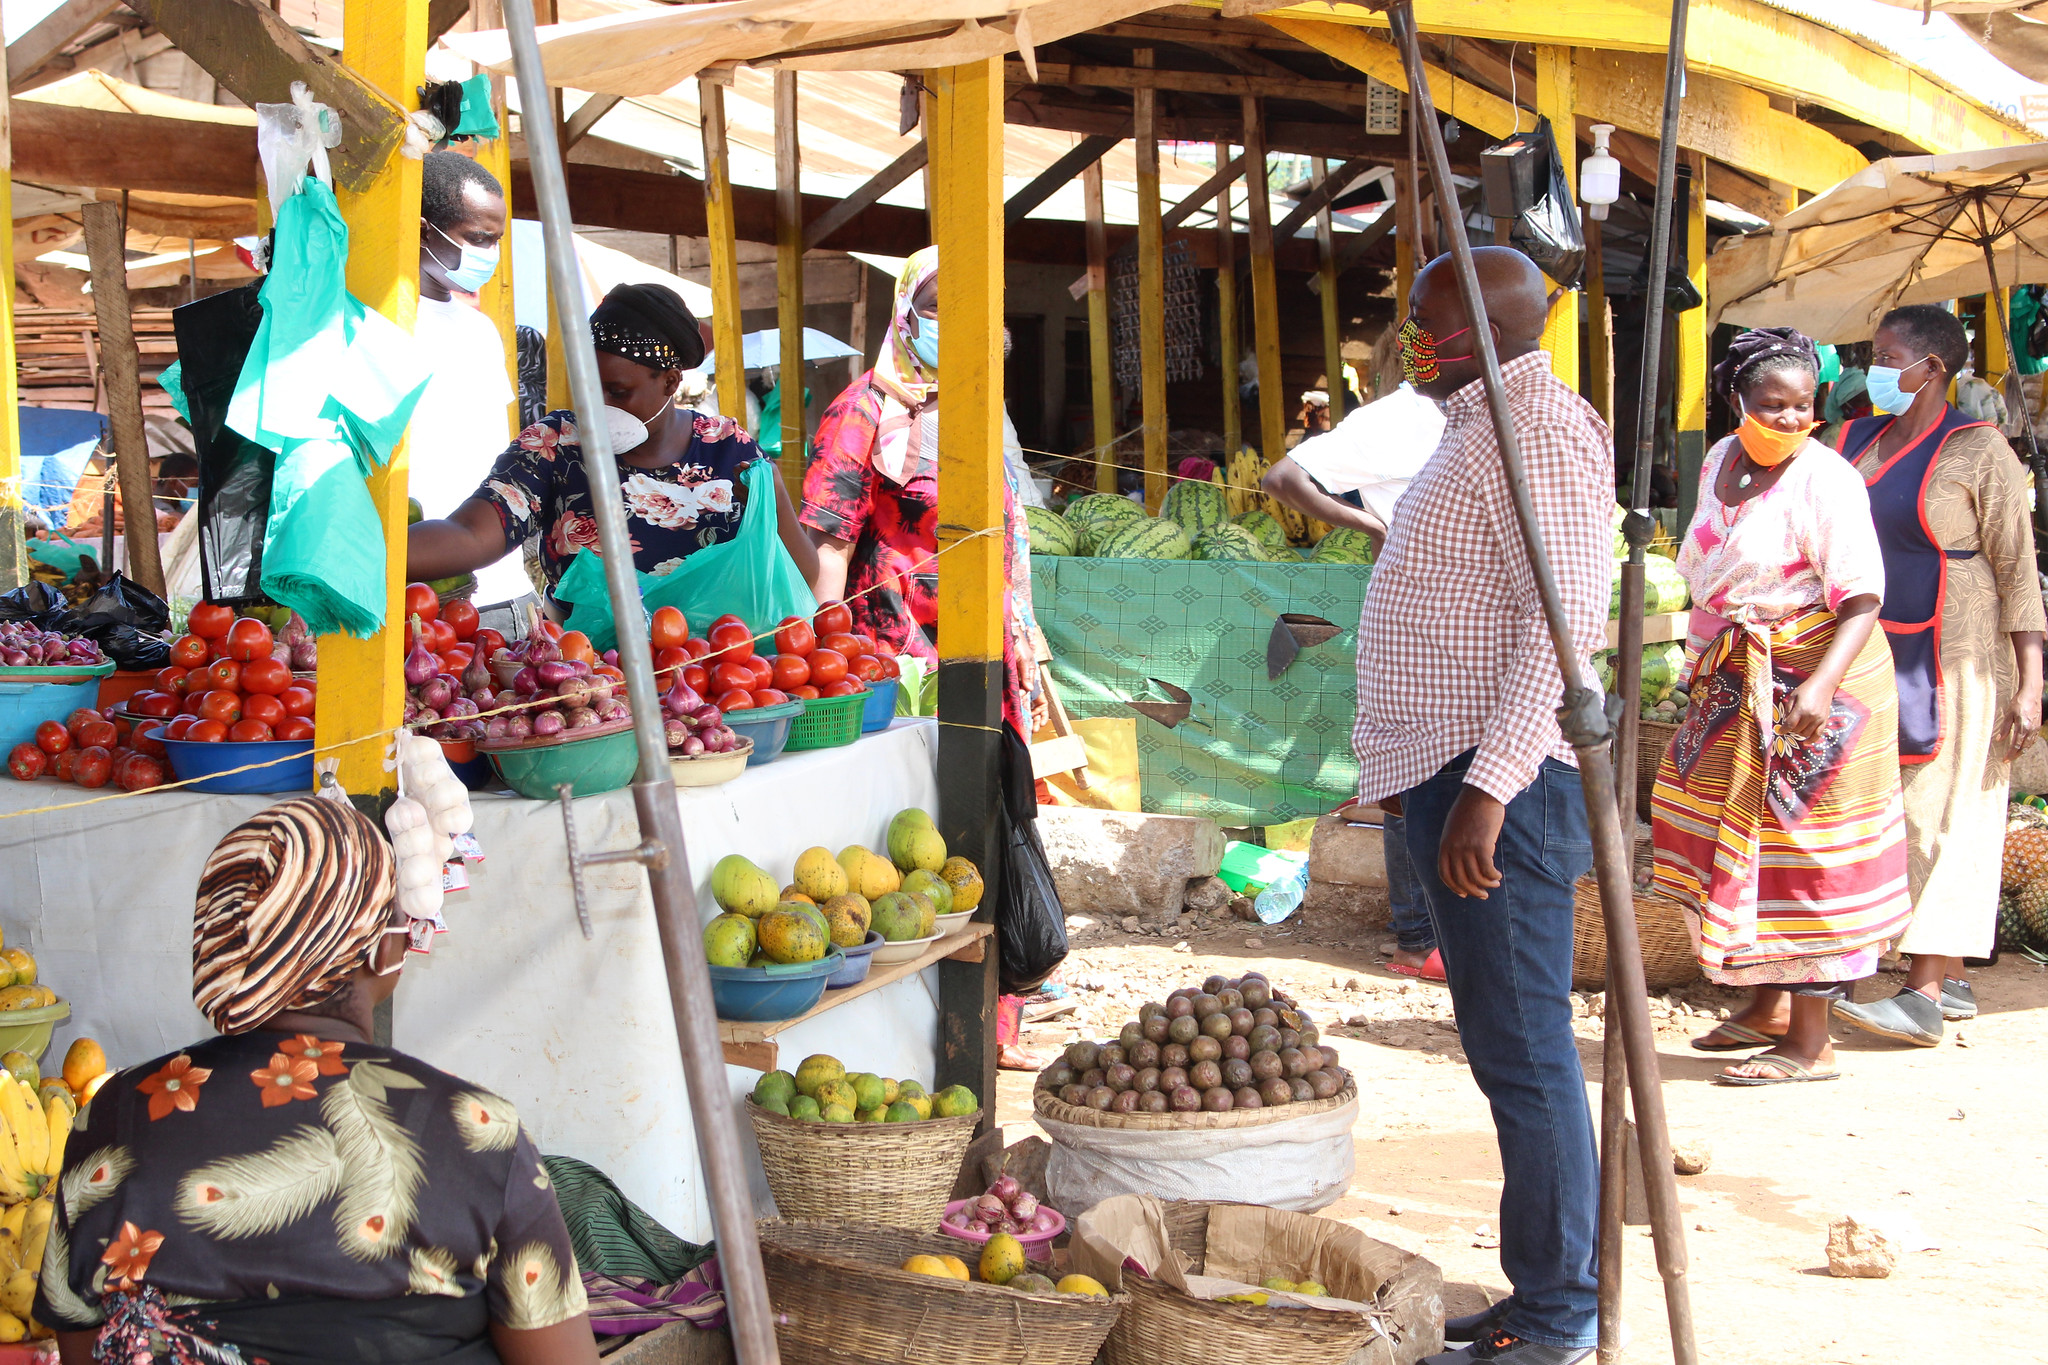 Buyers and sellers practice social distance during the COVID-19 pandemic in the Ugandan marketplace